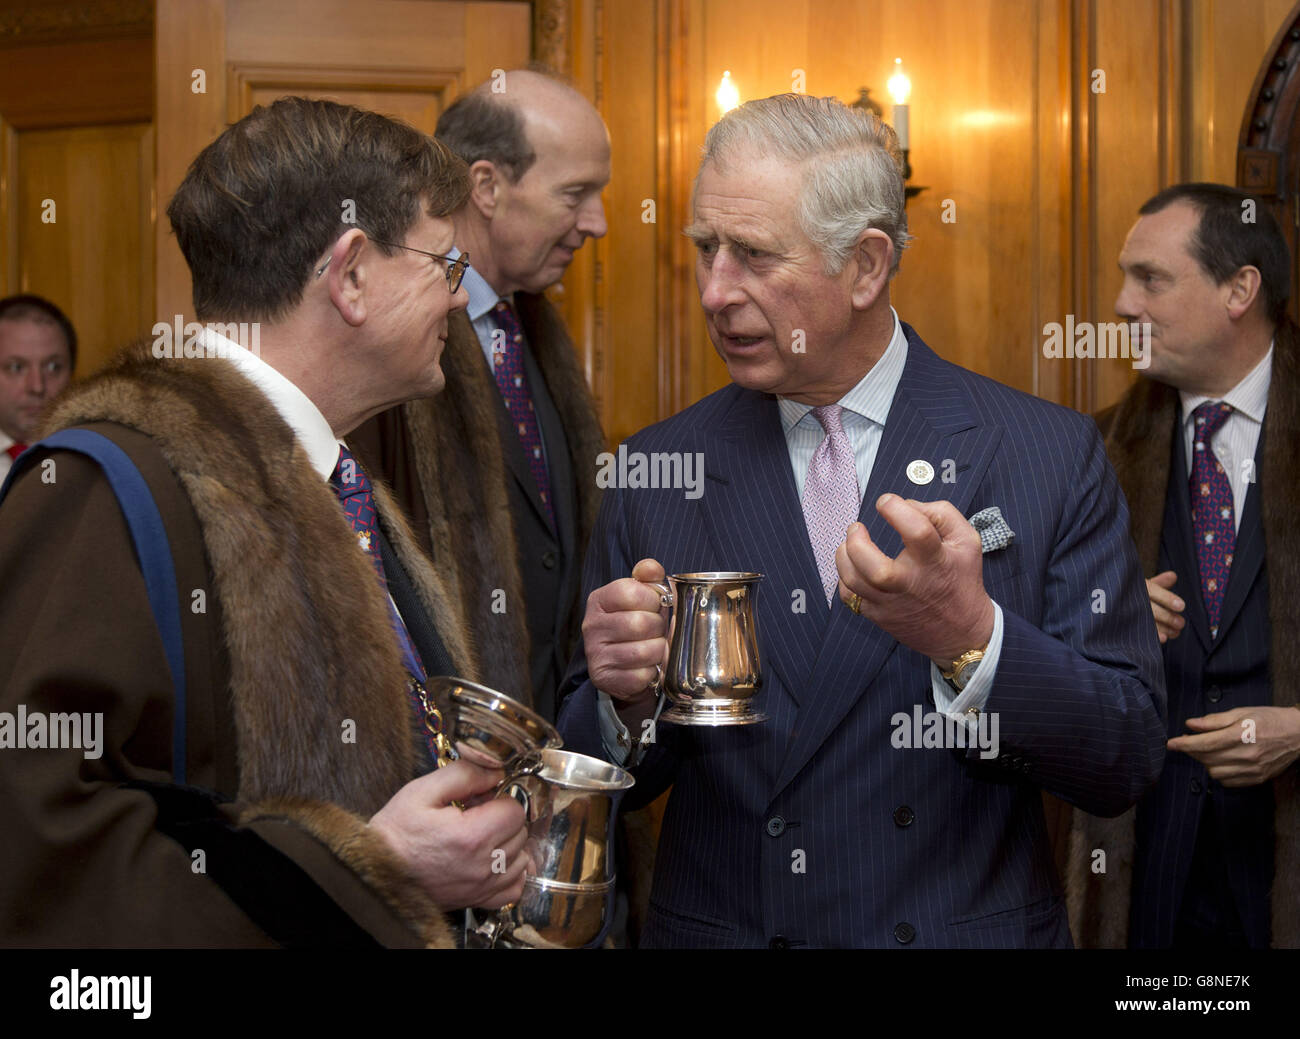 Prince Charles Worshipful Company of Brewers - Stock Image